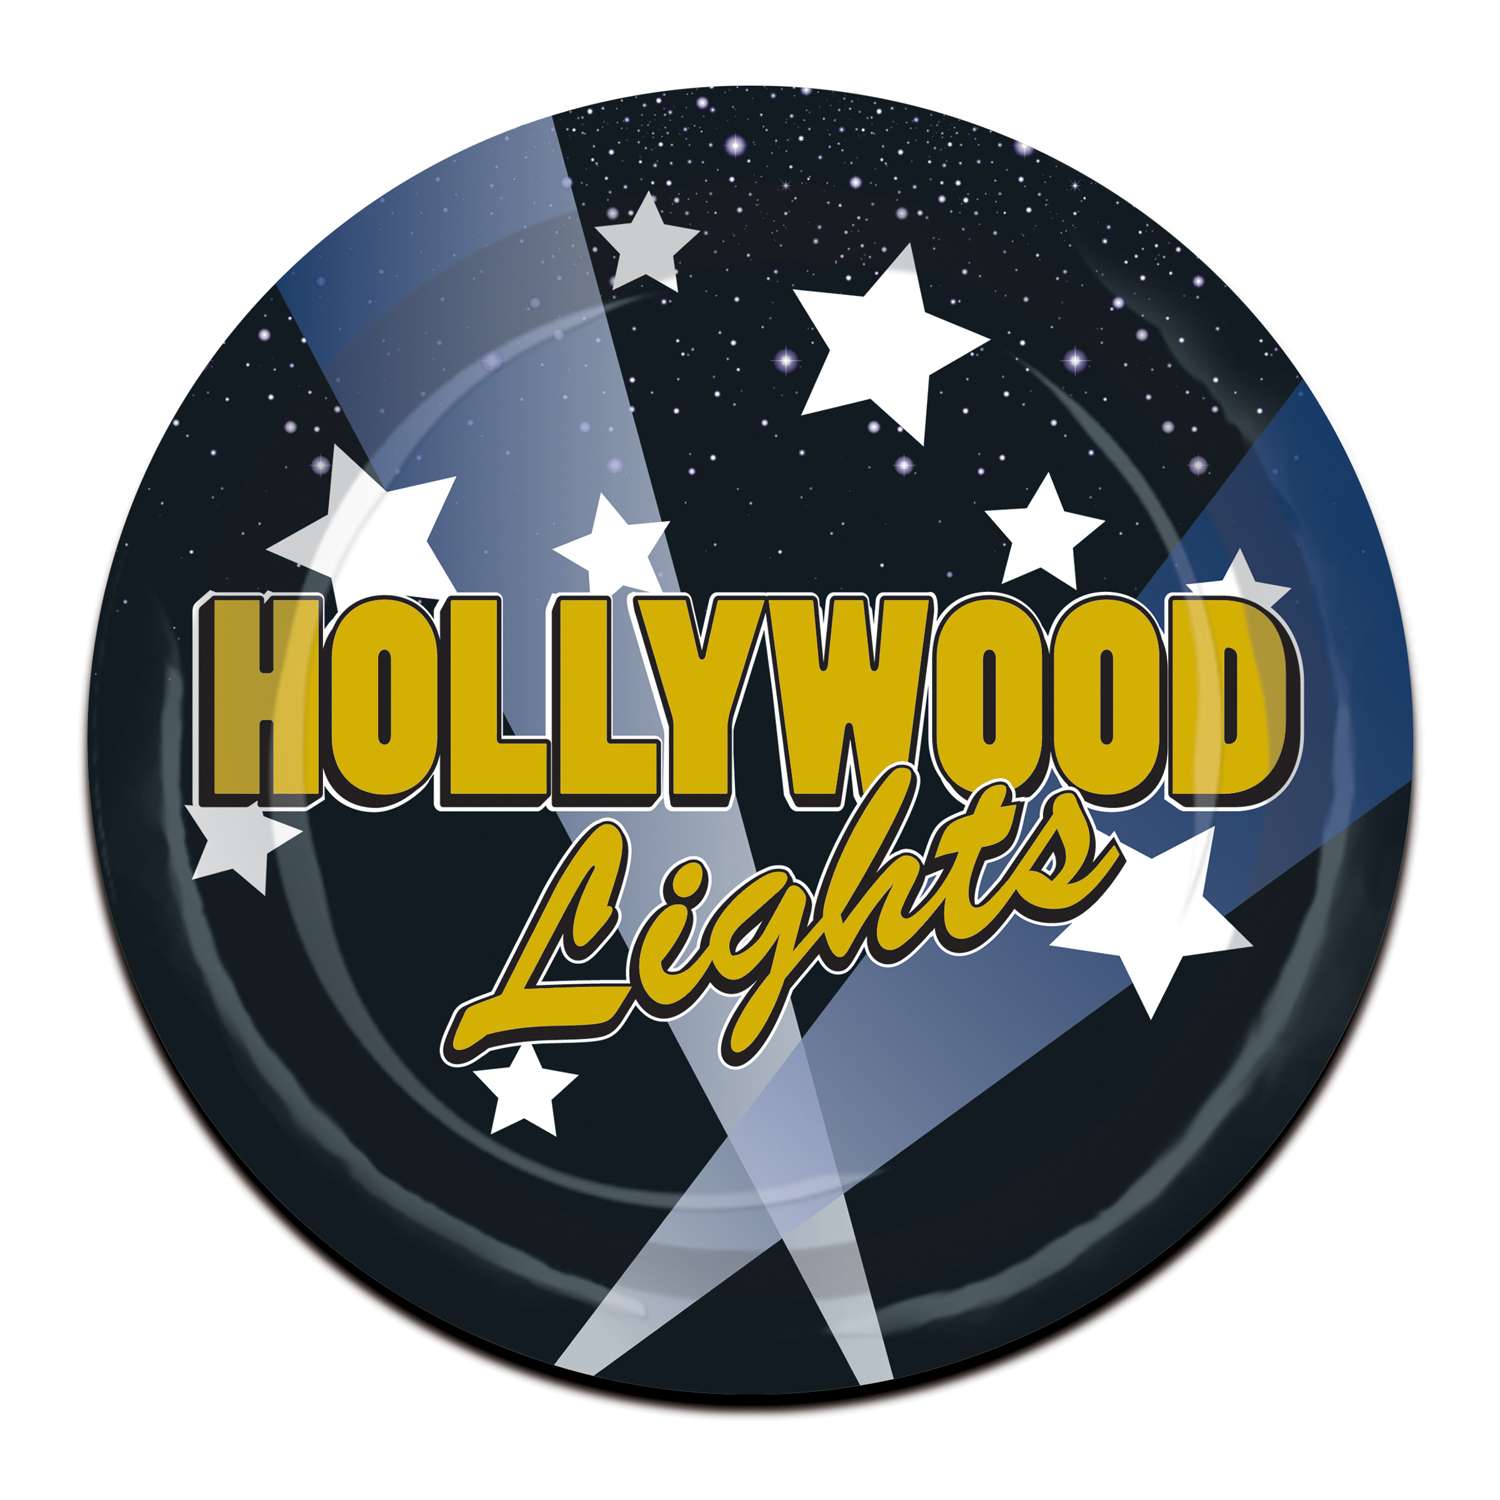 Hollywood Lights Plates (Pack of 96) Hollywood Lights Plates, food, desert, plates, hollywood, new years eve, wholesale, inexpensive, bulk